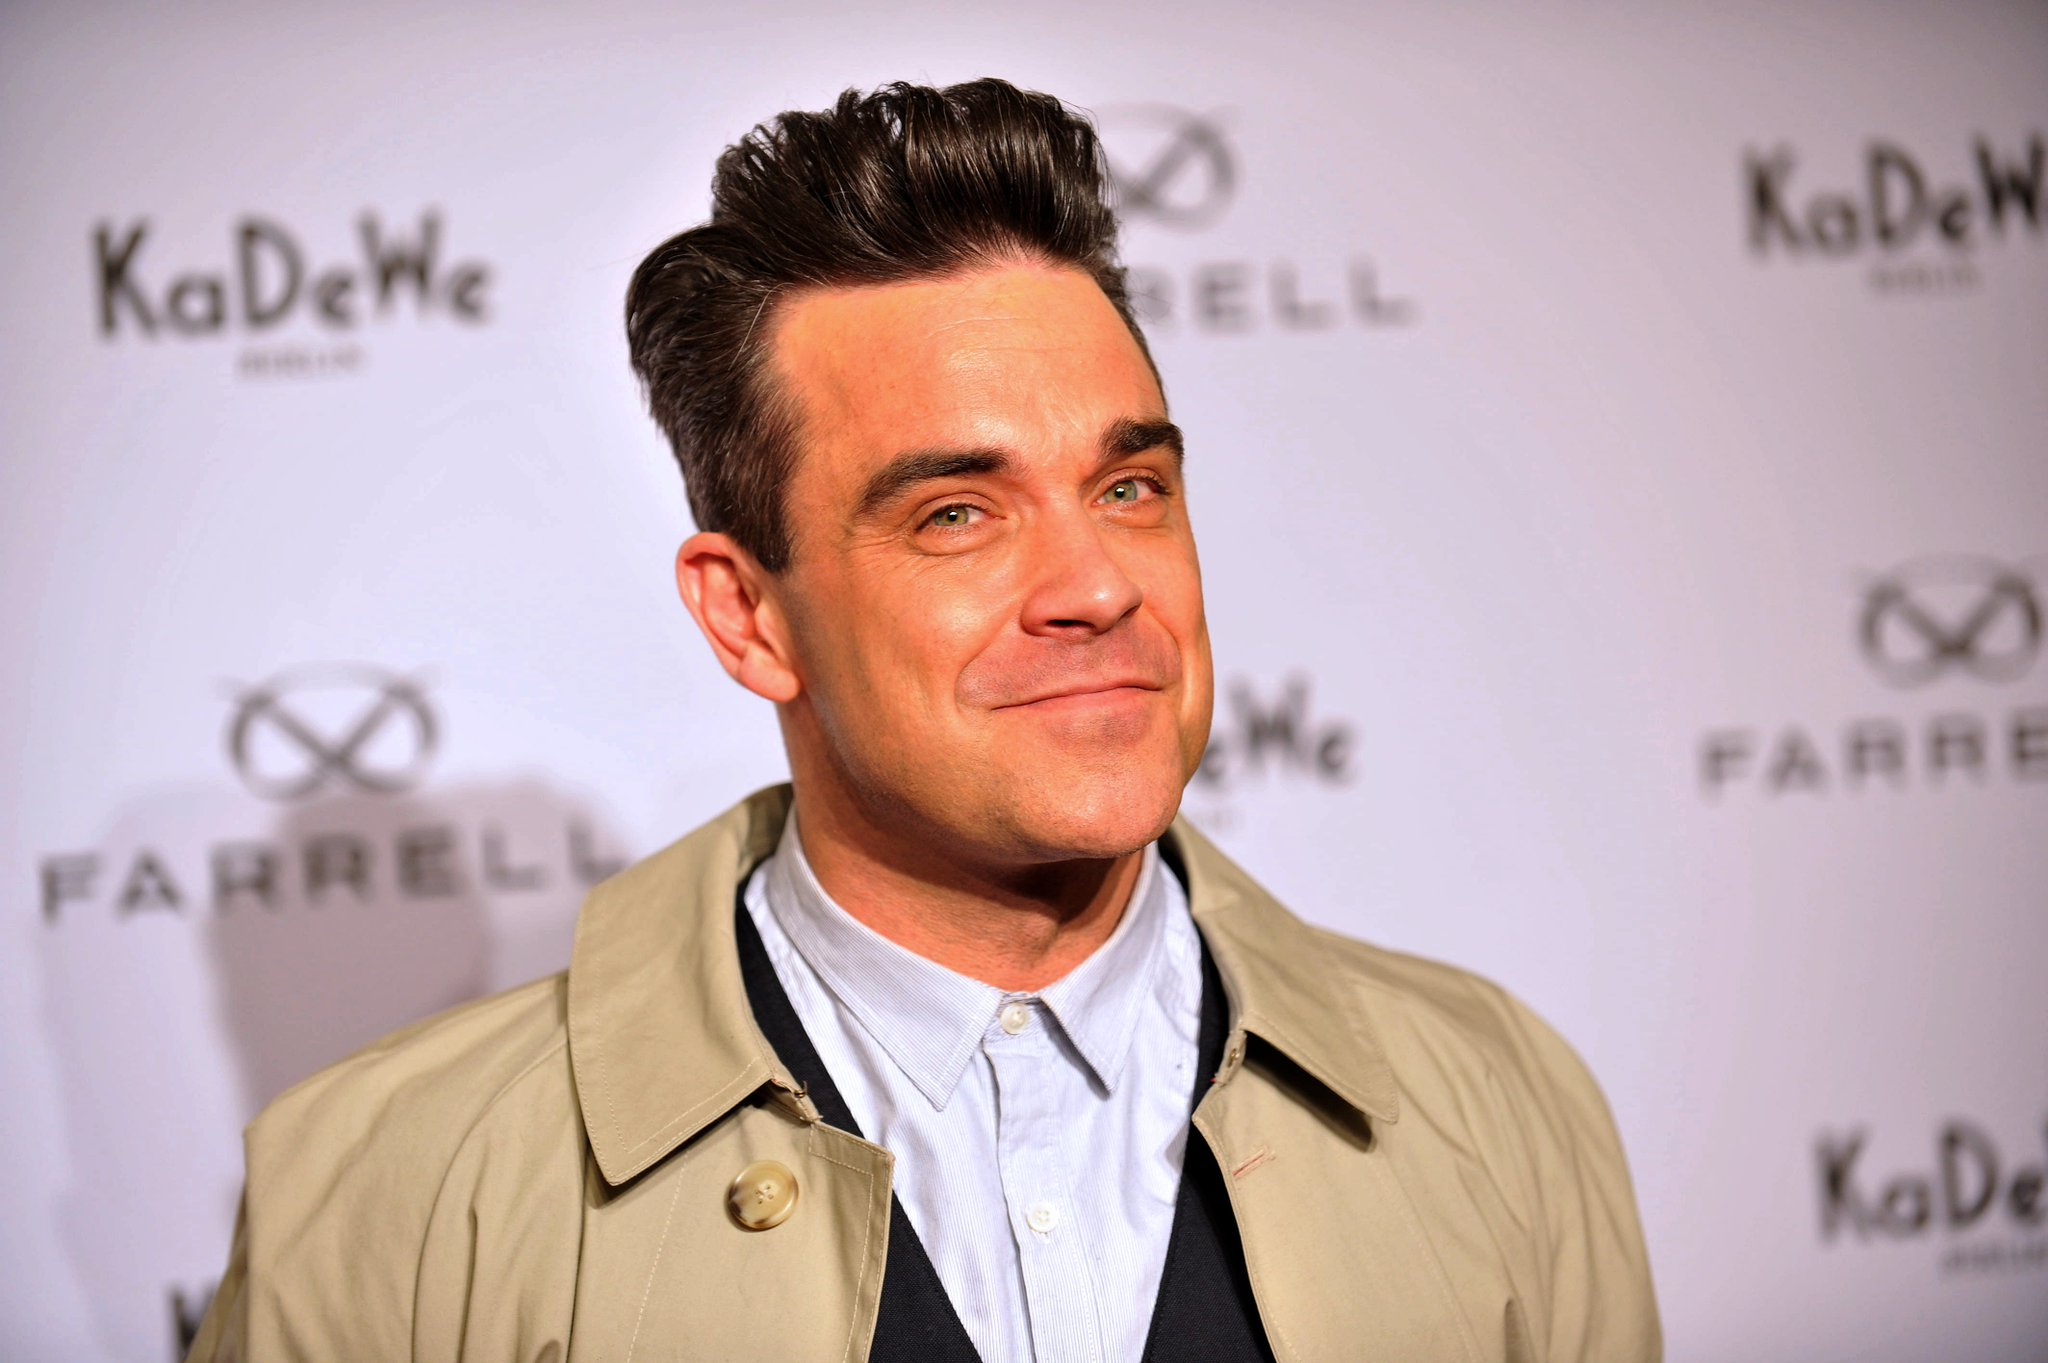 Happy Birthday to Robbie Williams, never fails to entertain us!